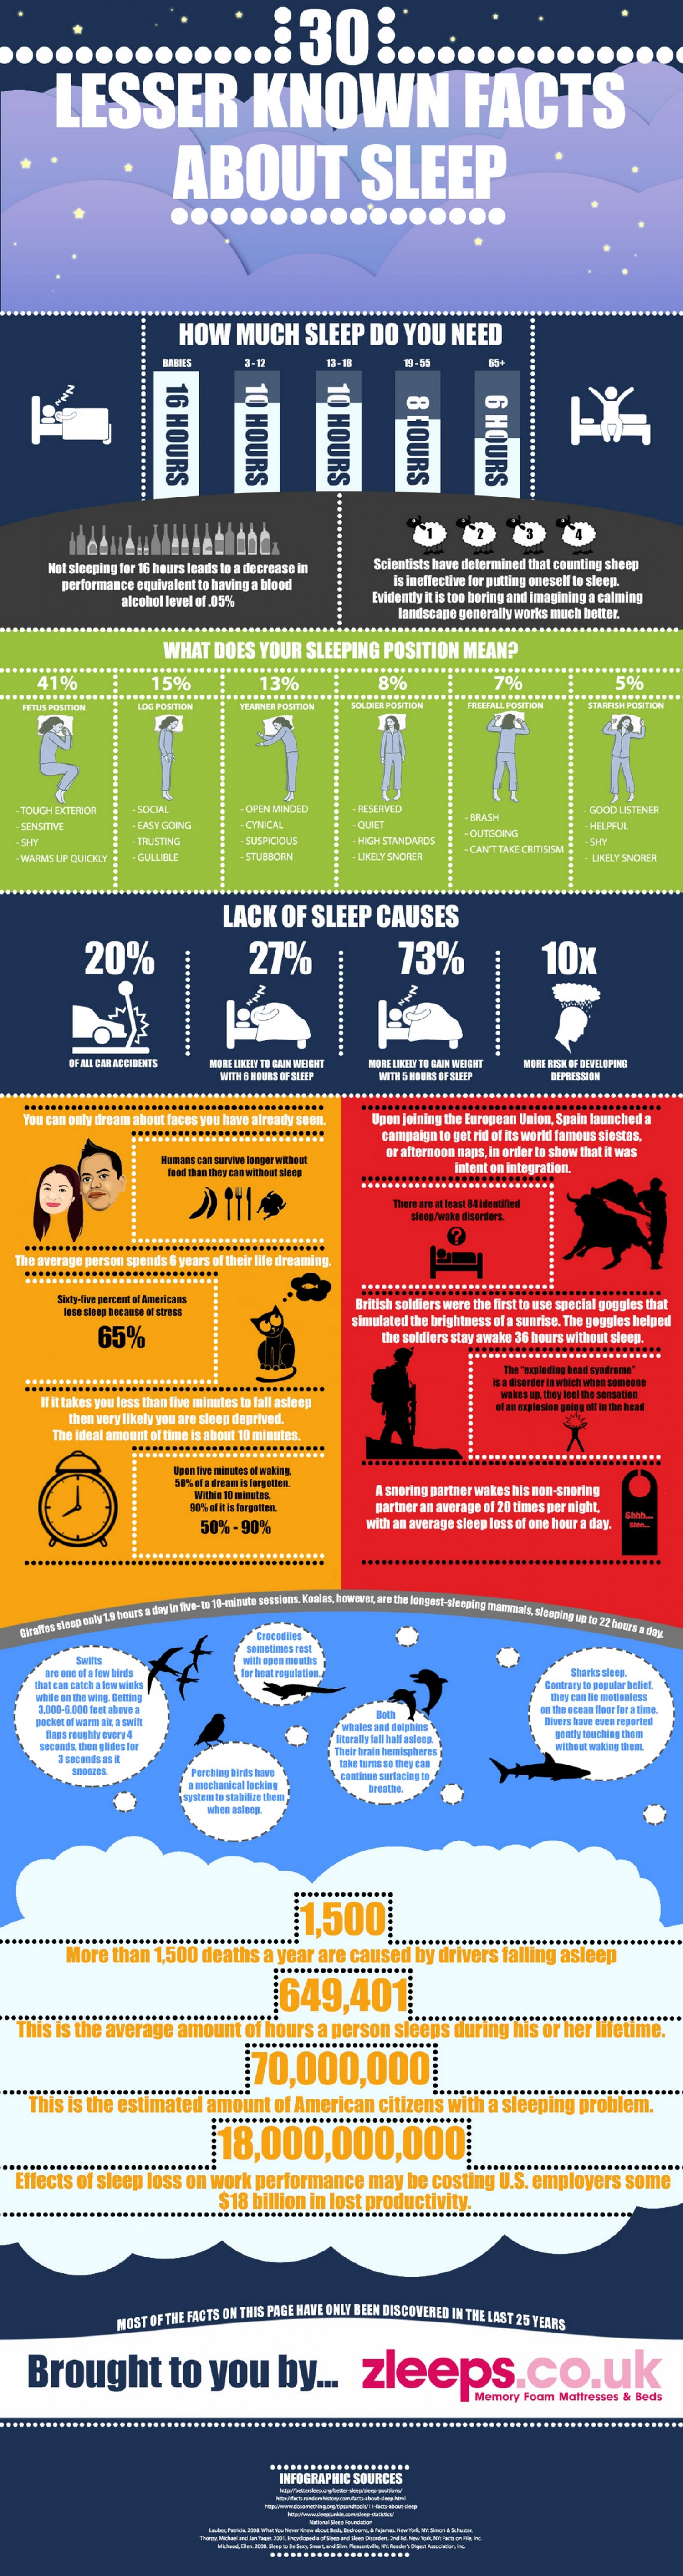 30 Lesser Known facts About Sleep Infographic